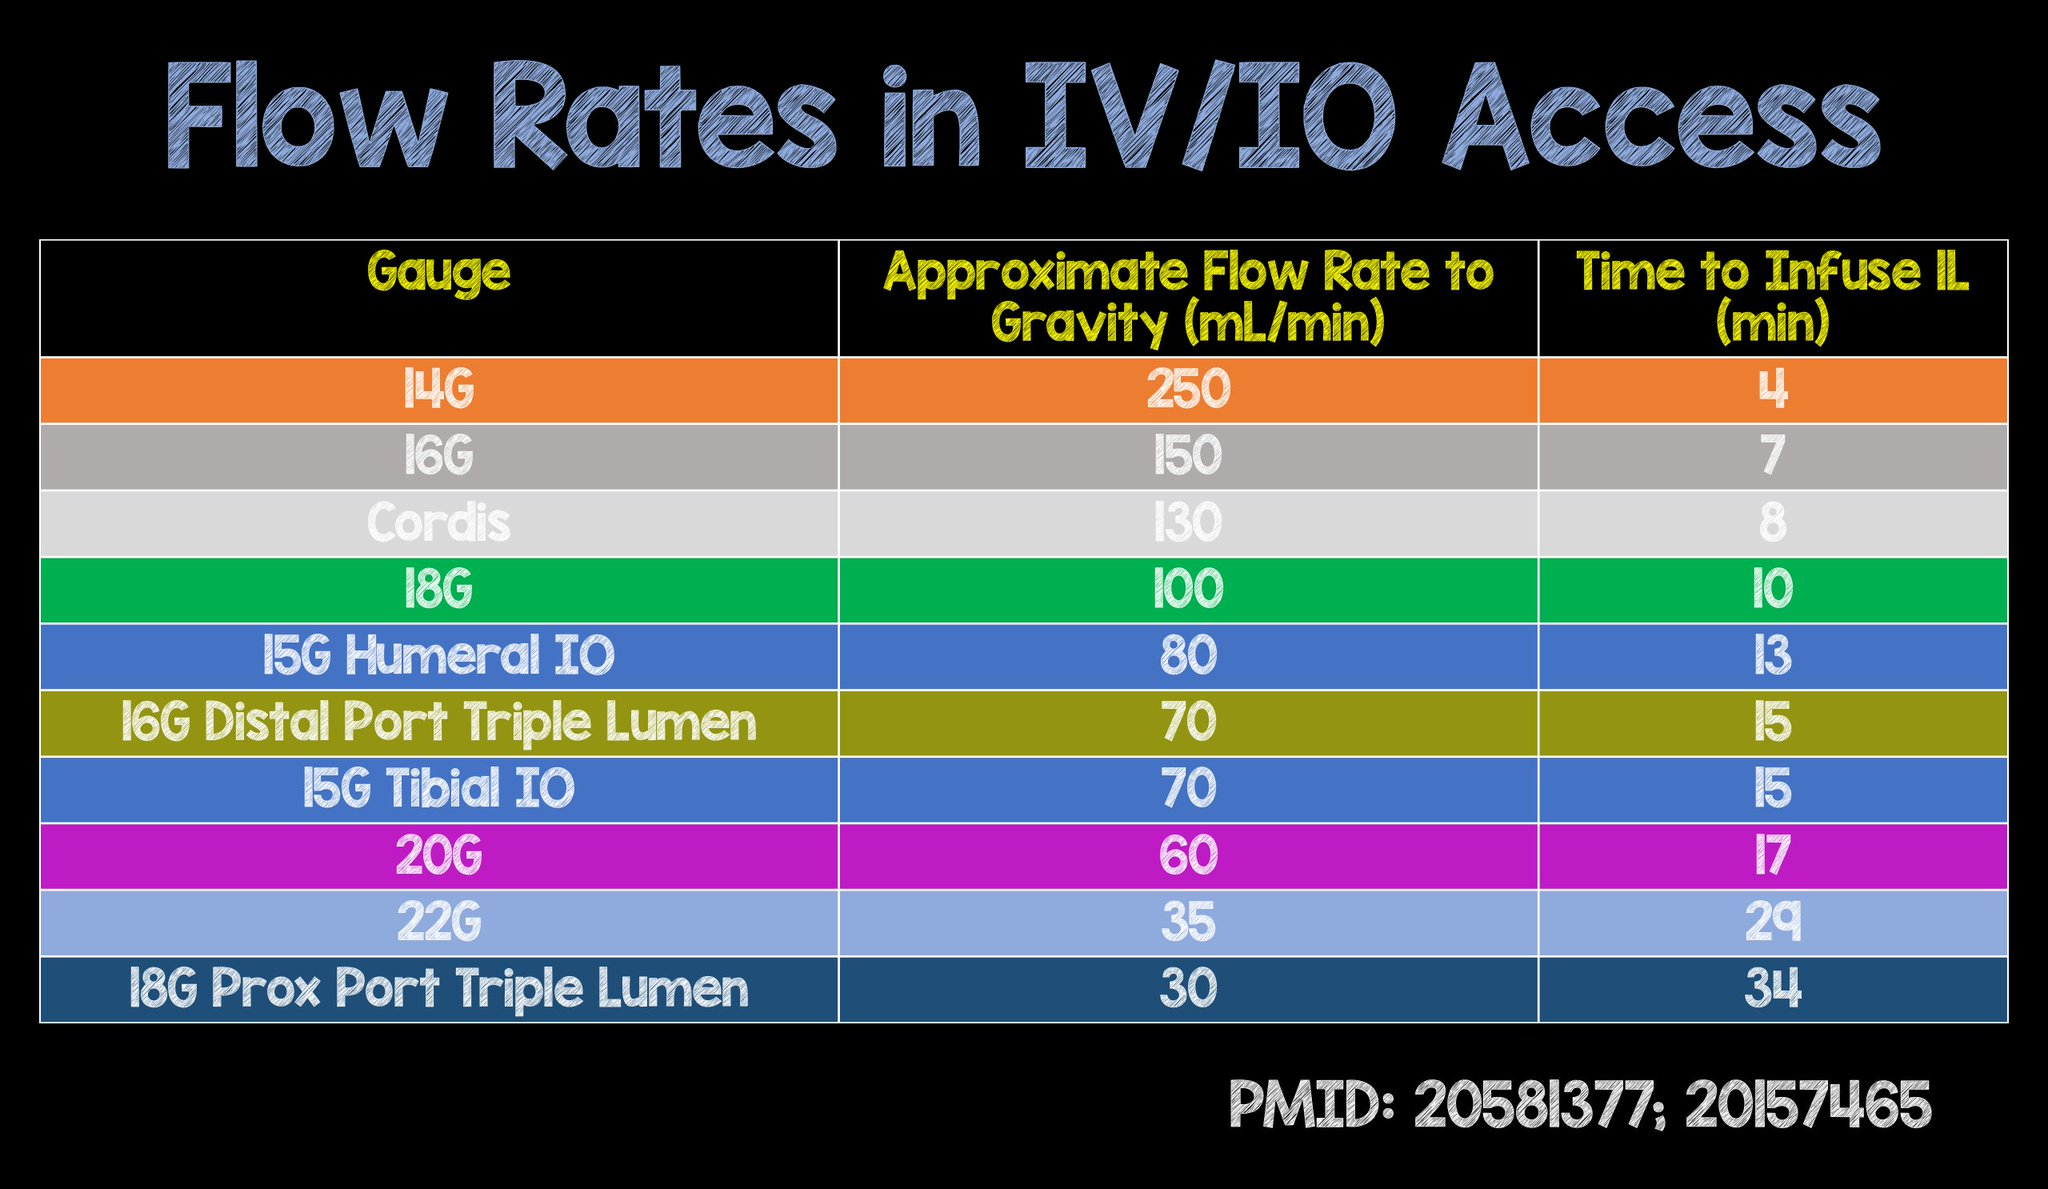 Per #FOAMed feedback, CVC & IO access flow rates added to chart #FOAMed #postpubpeerreview https://t.co/ScCp3boWG7